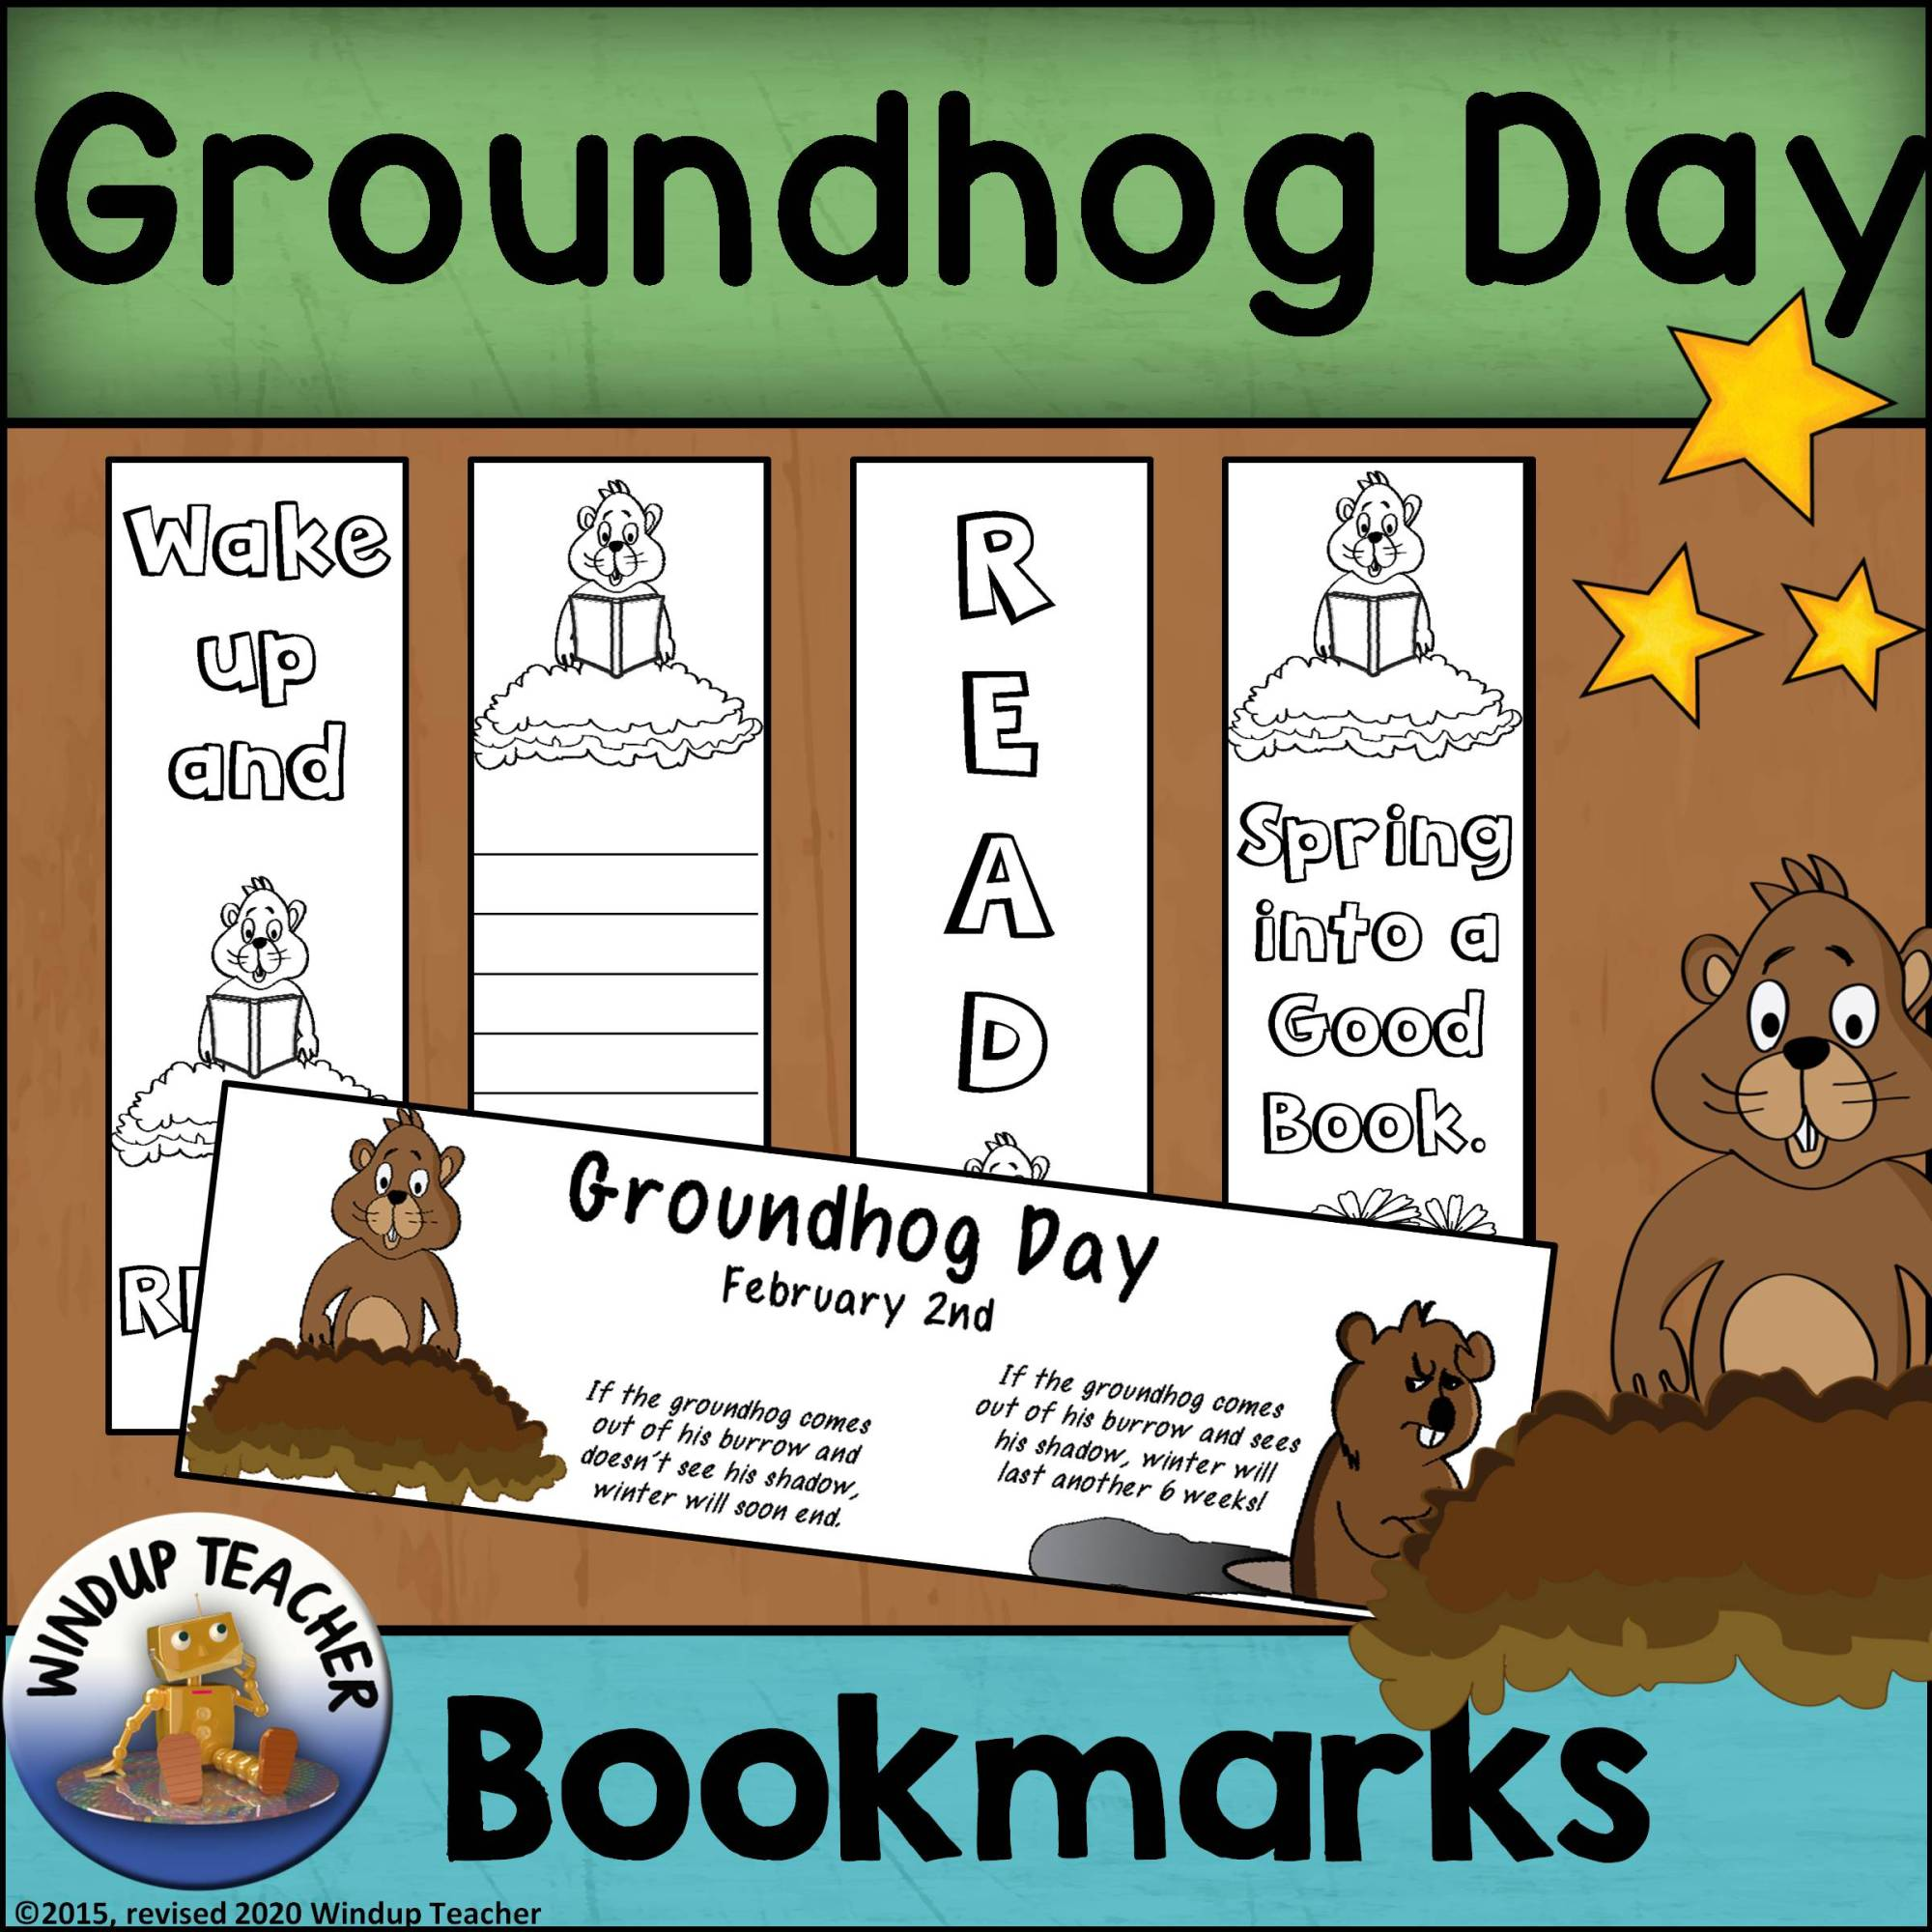 hight resolution of Groundhog Day Bookmarks - Made By Teachers